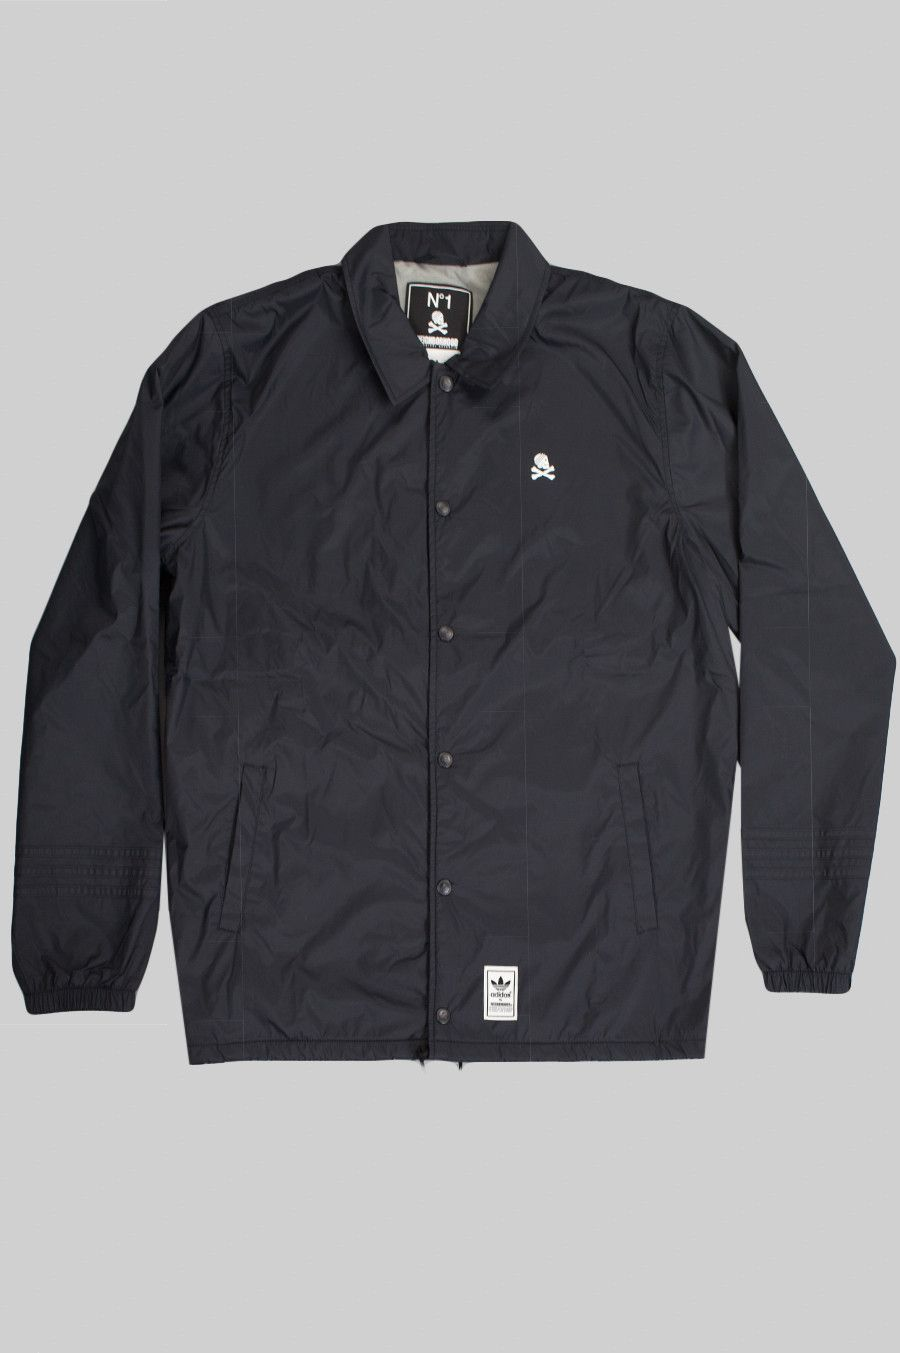 a9d102b90c89a ADIDAS X NEIGHBORHOOD COACH JACKET BLACK | Fall shit | Jackets ...